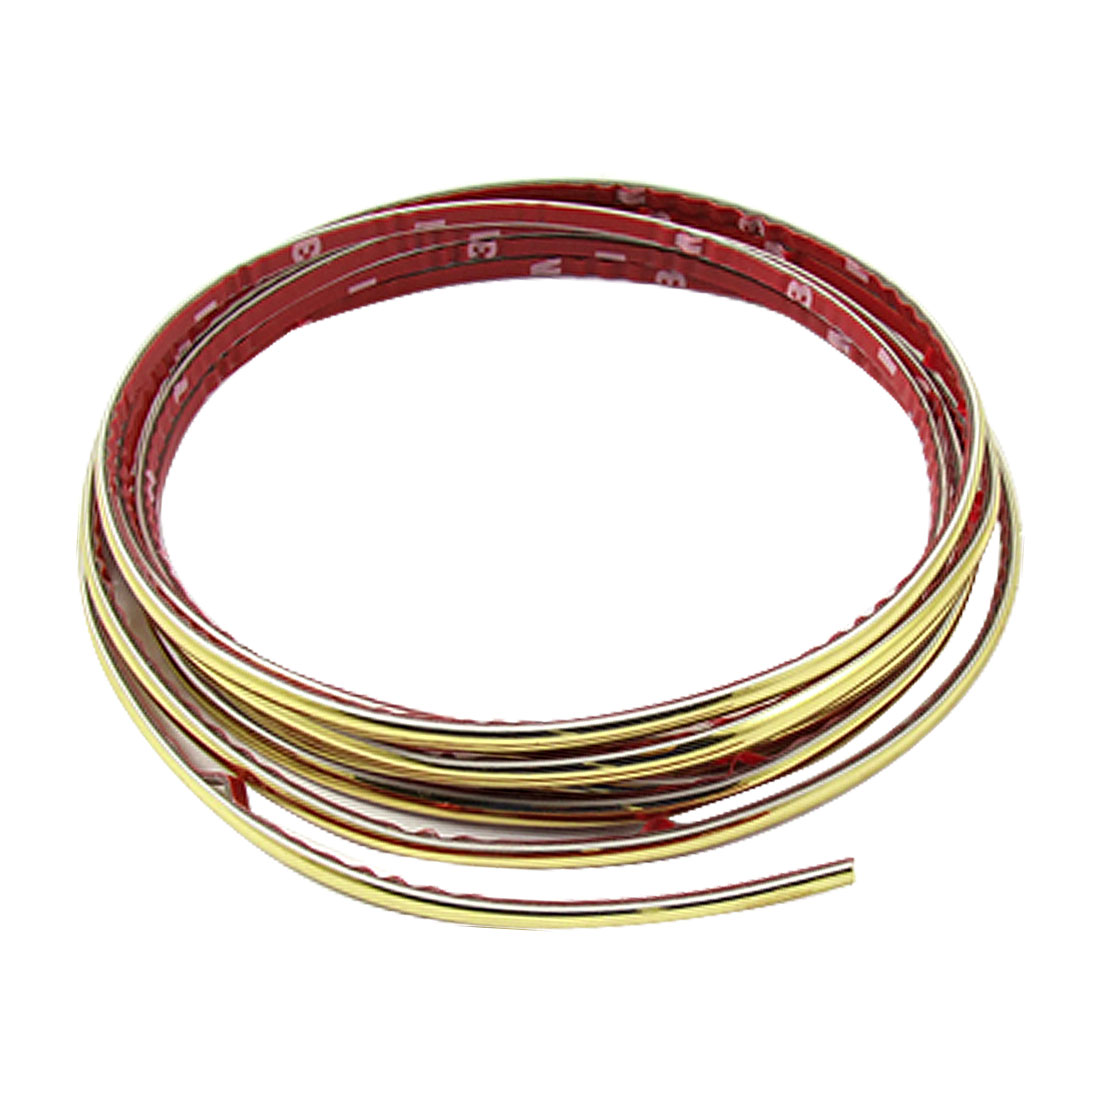 Auto Car Gold Tone 5 Meter Flexible Soft Plastic Panel Moulding Trim Strip